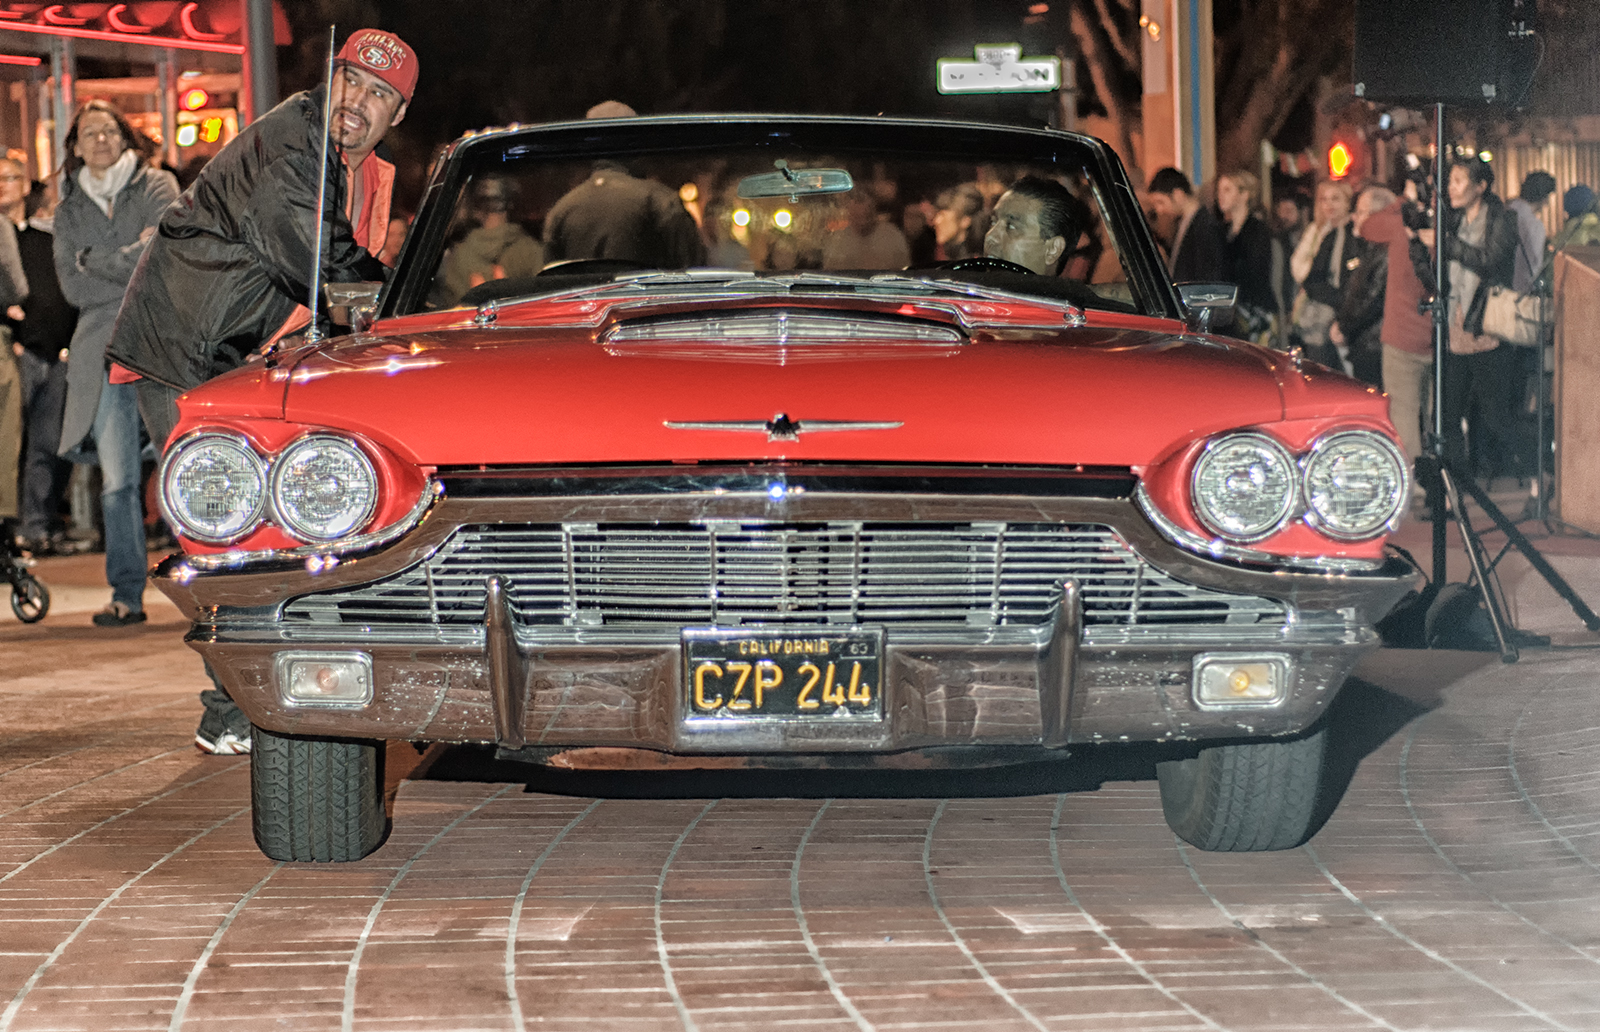 Dancer Humphrey Maleka arrives at the performance in a red, 1960s Thunderbird that drives onto the Plaza right up to the BART entrance.